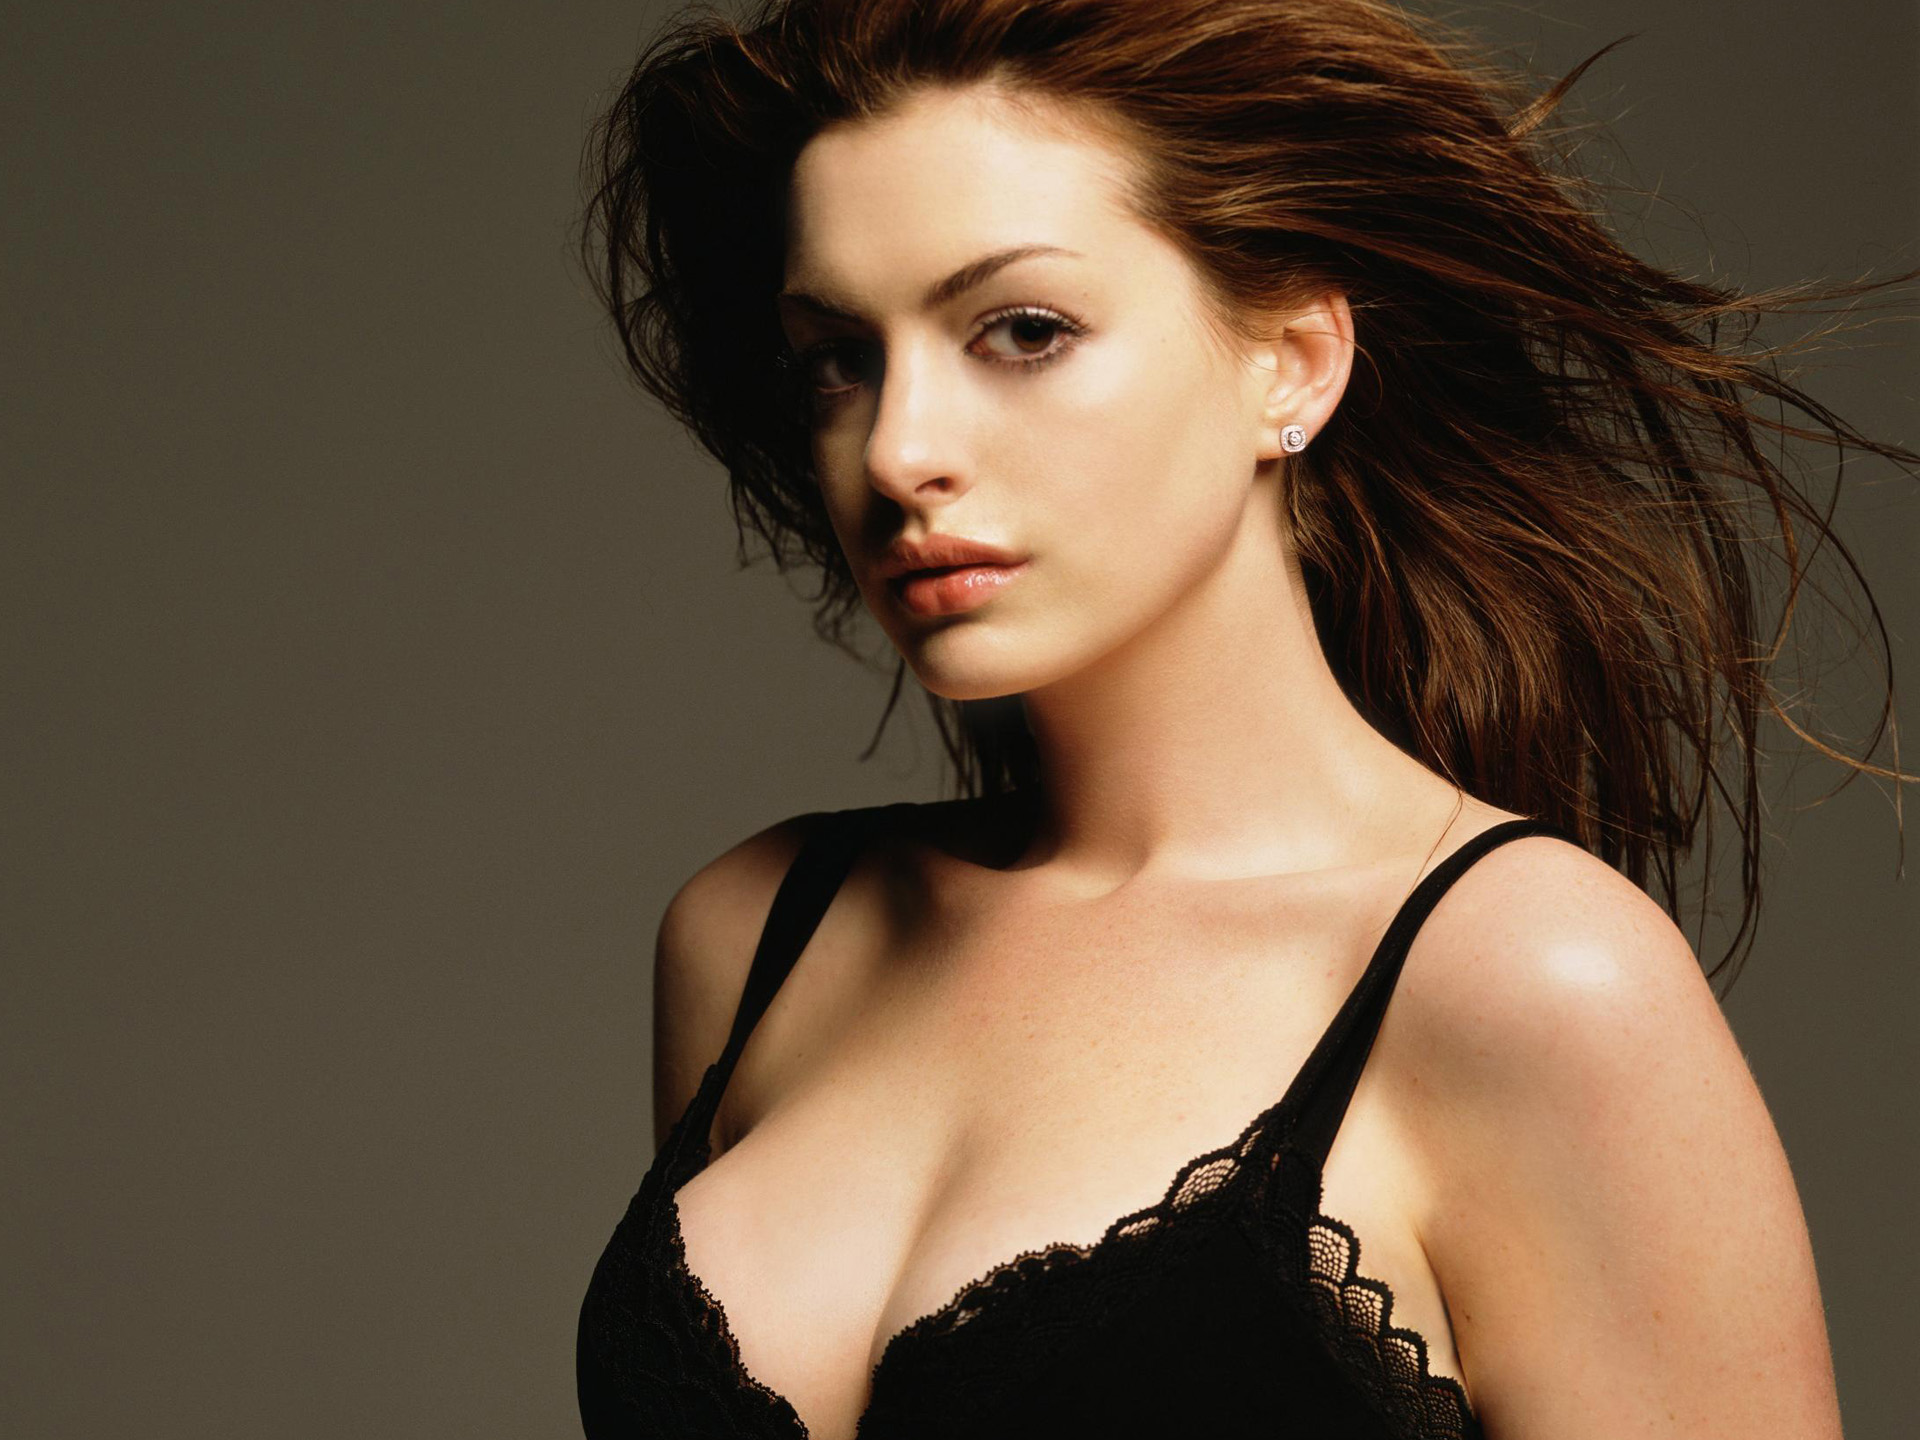 Anne-hathaway-hot-hollywood-actress-nice-hd-wallpaper